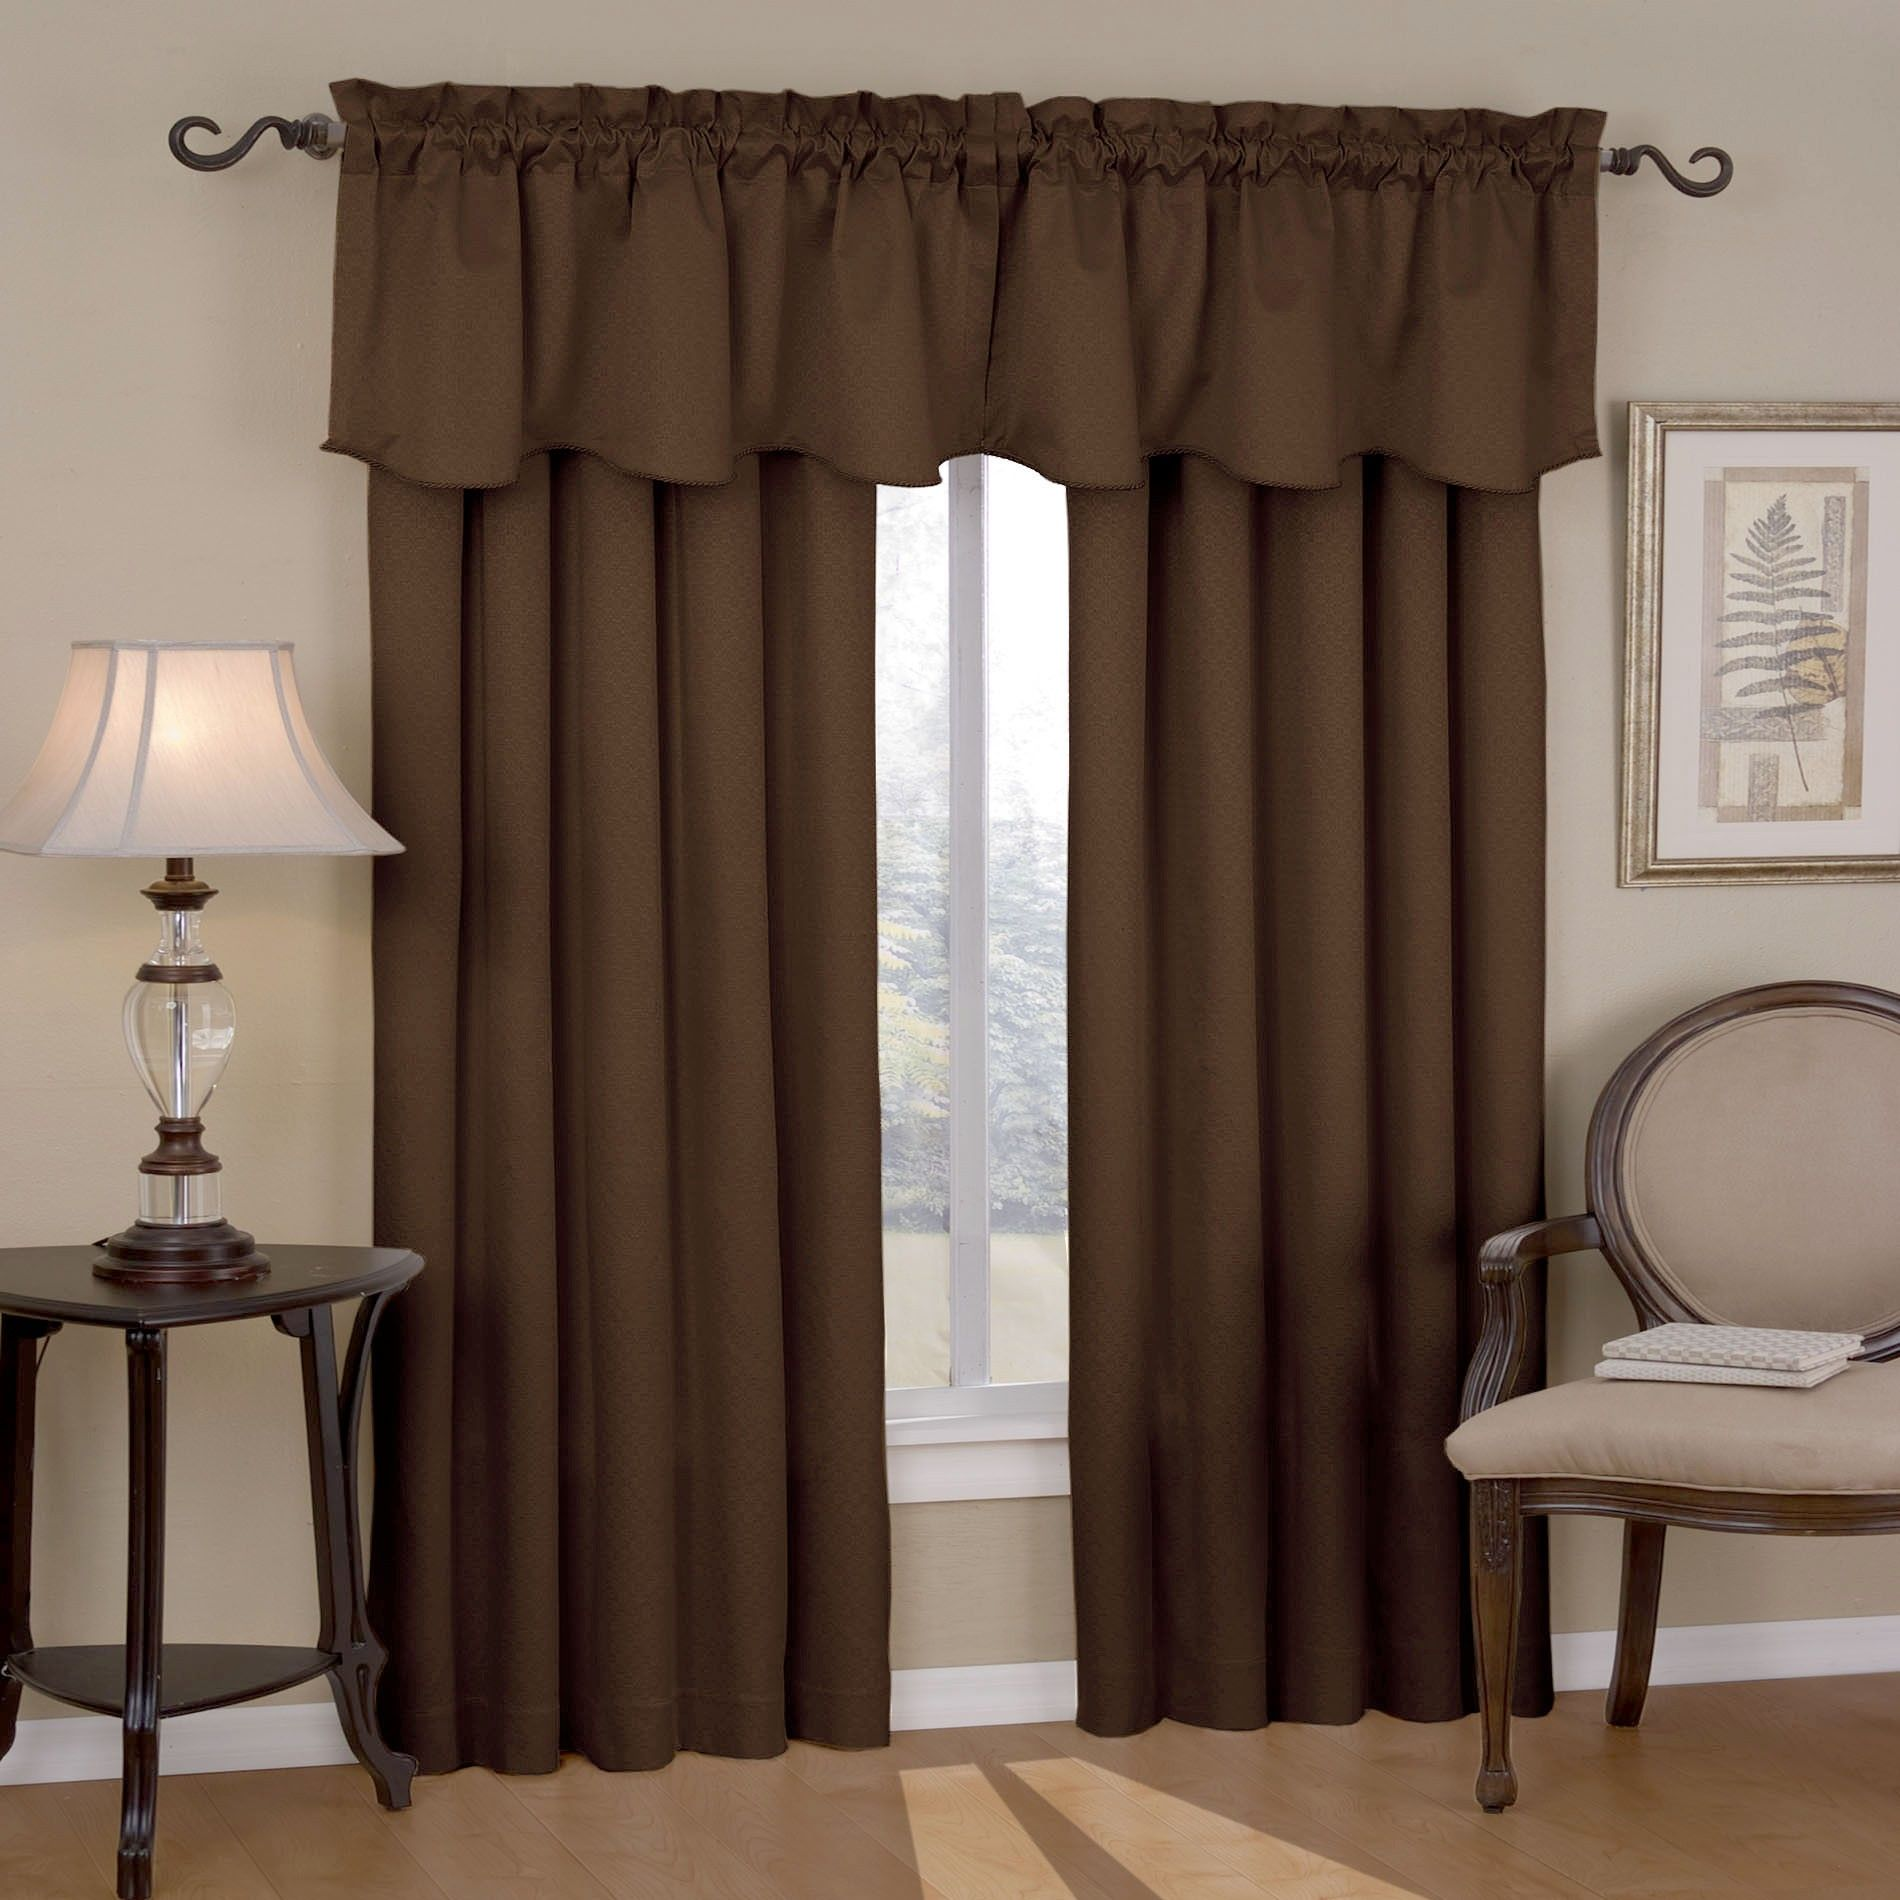 Blackout Curtains In Dubai Abu Dhabi And Across Uae Supply And Installation Call 0566009626 In 2020 Panel Curtains Drapes Curtains Valance Curtains